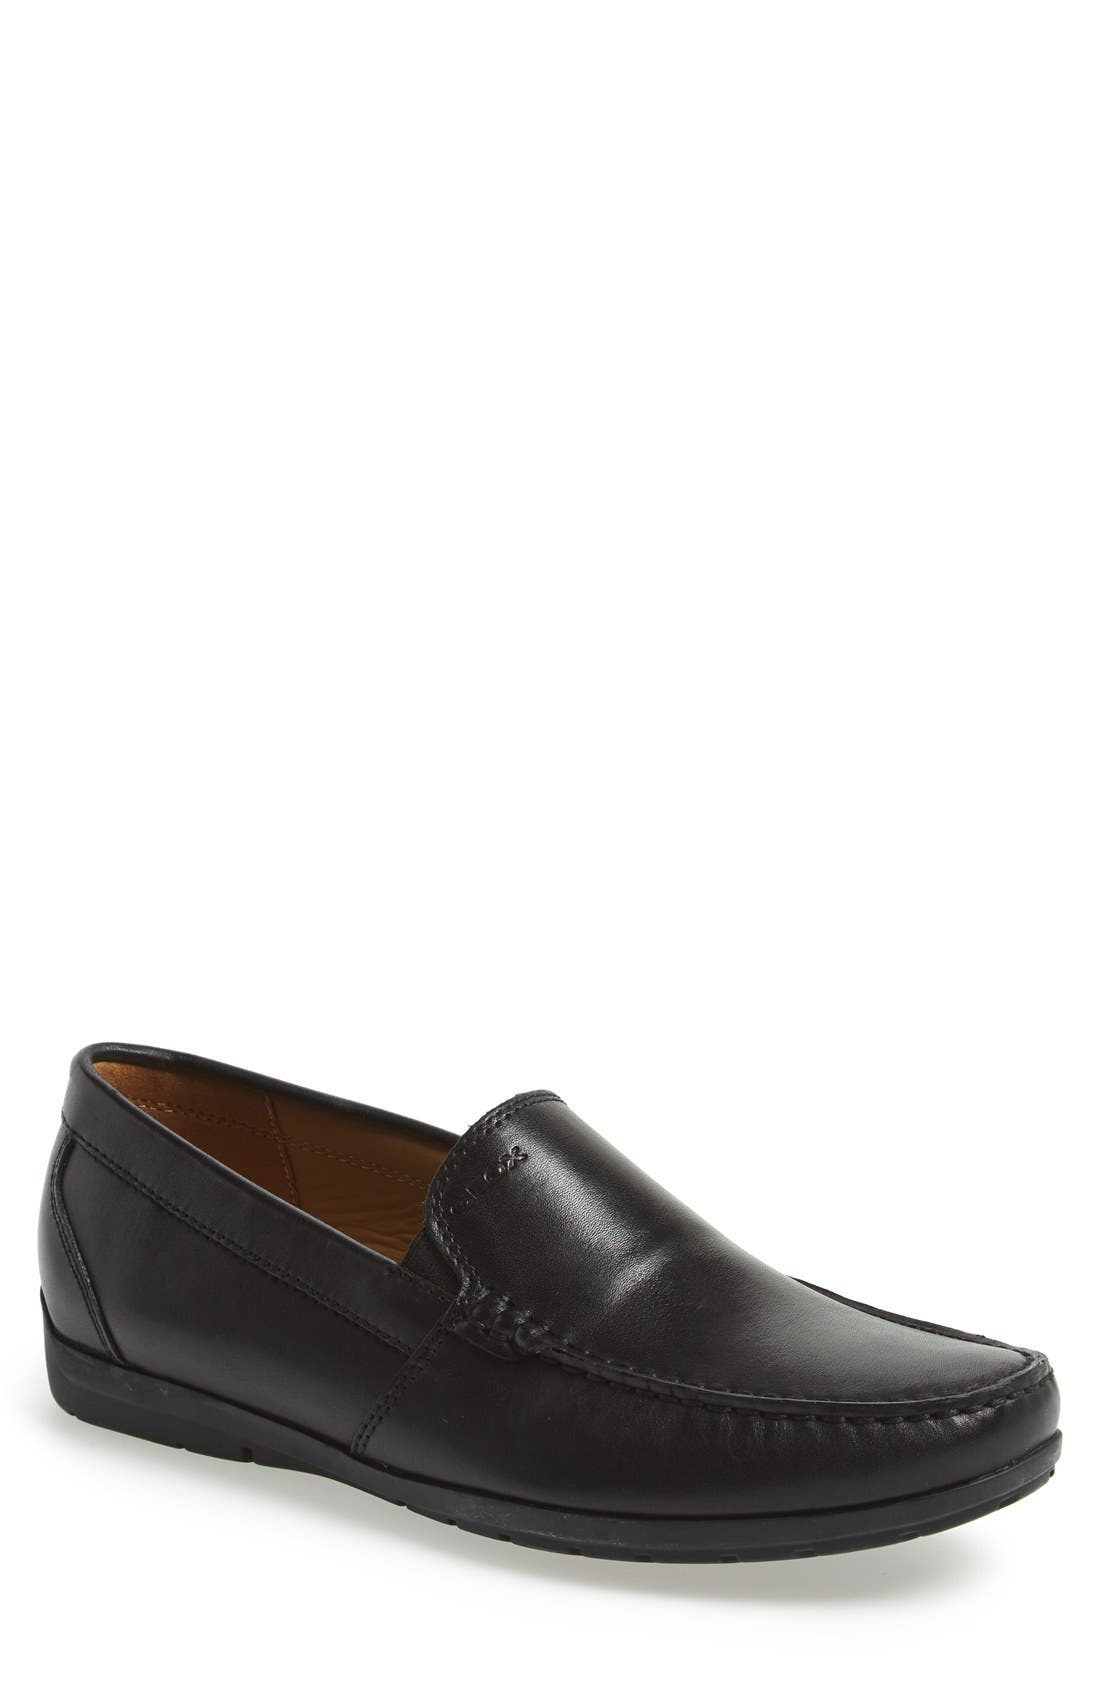 Image of GEOX Simon Leather Loafer